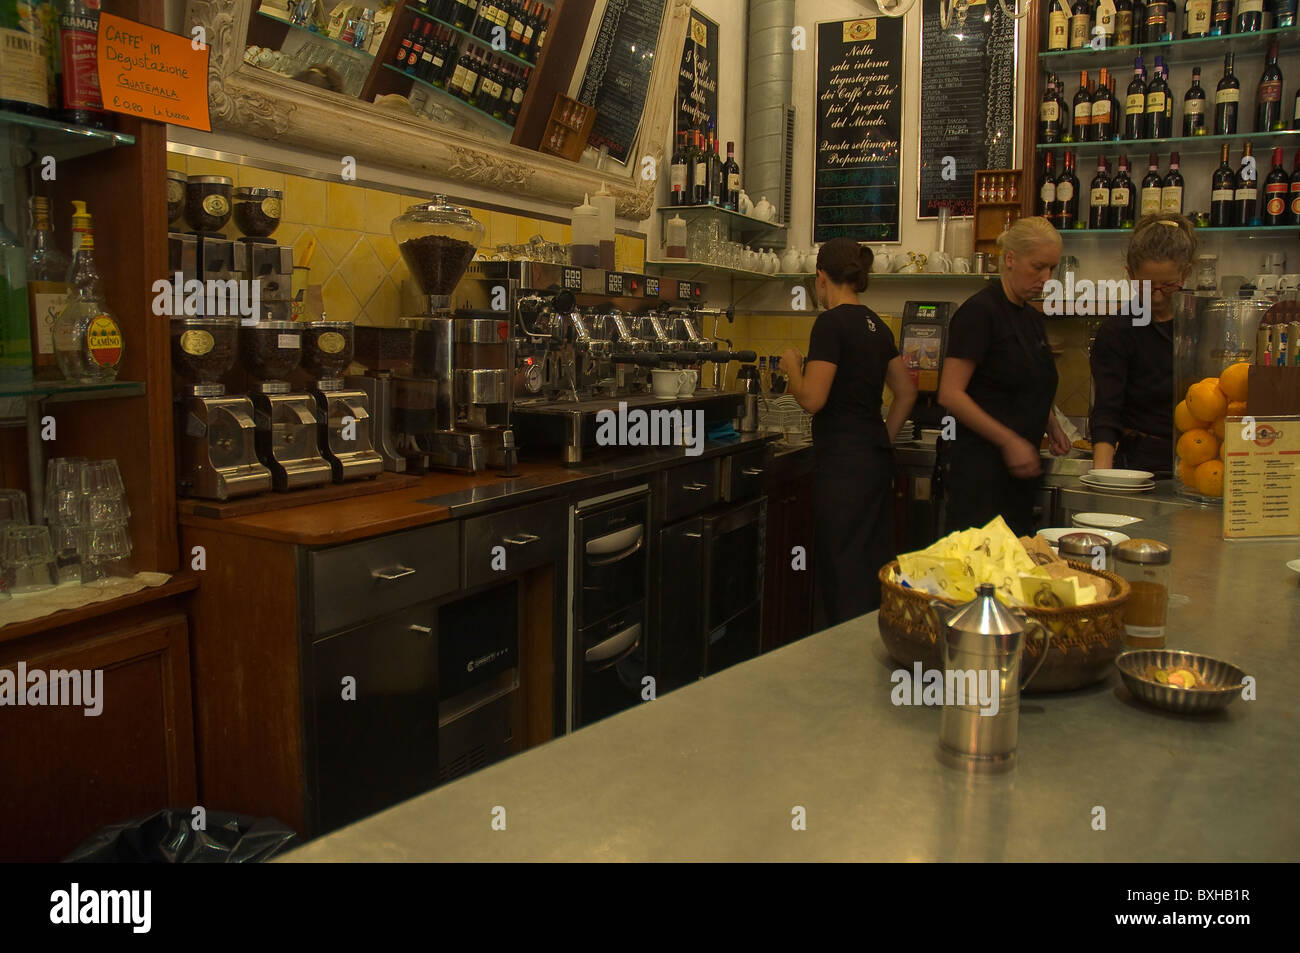 Cafe Chiaroscuro along Via del Corso central Florence (Firenze) Tuscany central Italy Europe - Stock Image